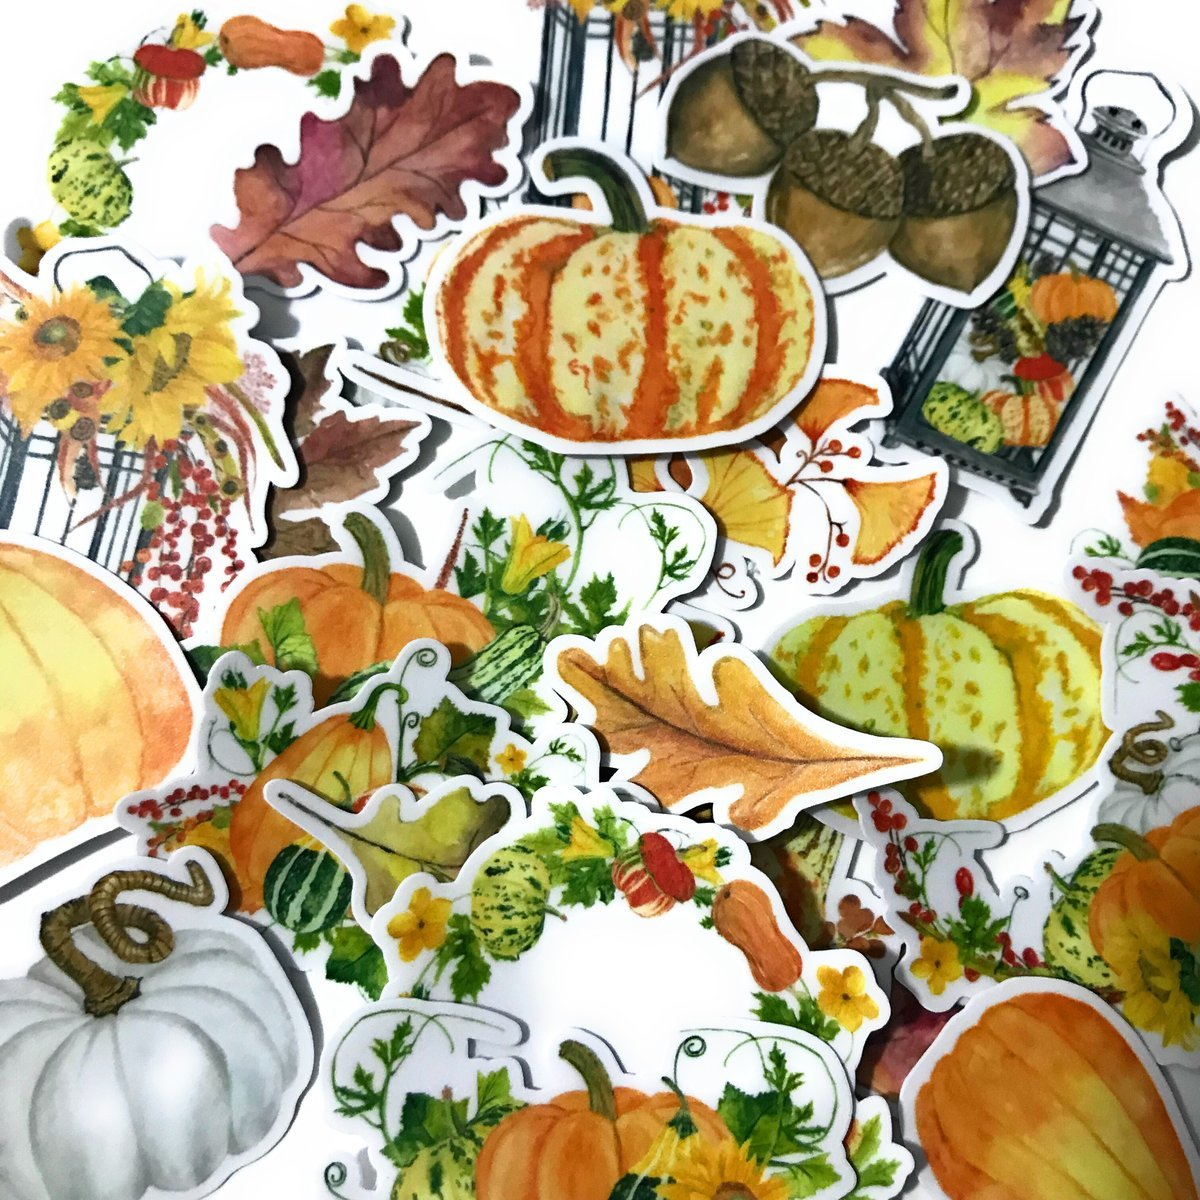 Cute Pumpkin Stickers and Autumn Stickers for Scrapbooking and Halloween Giveaways (25 Pieces) Navy Peony